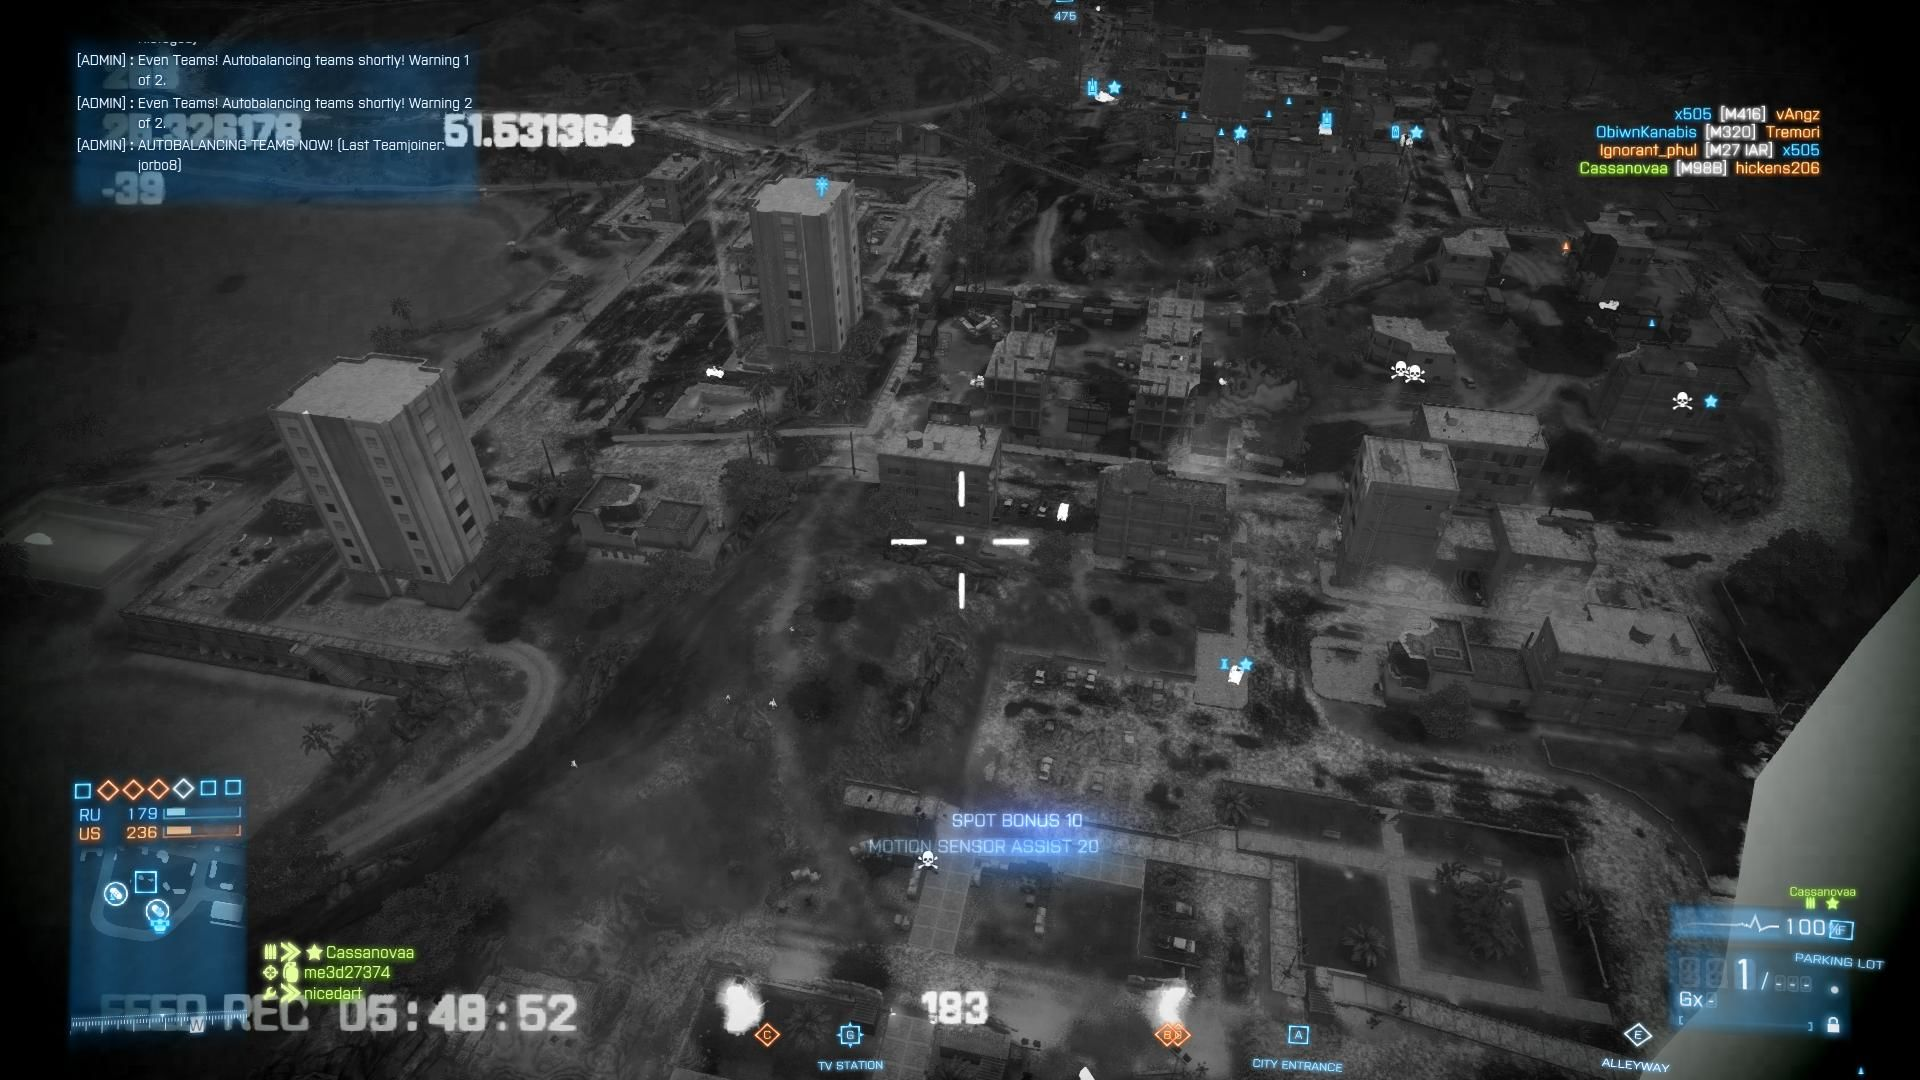 Battlefield 3: Back to Karkand Windows Using the Recon kit and MAV pointing out targets over Sharqi Peninsula map